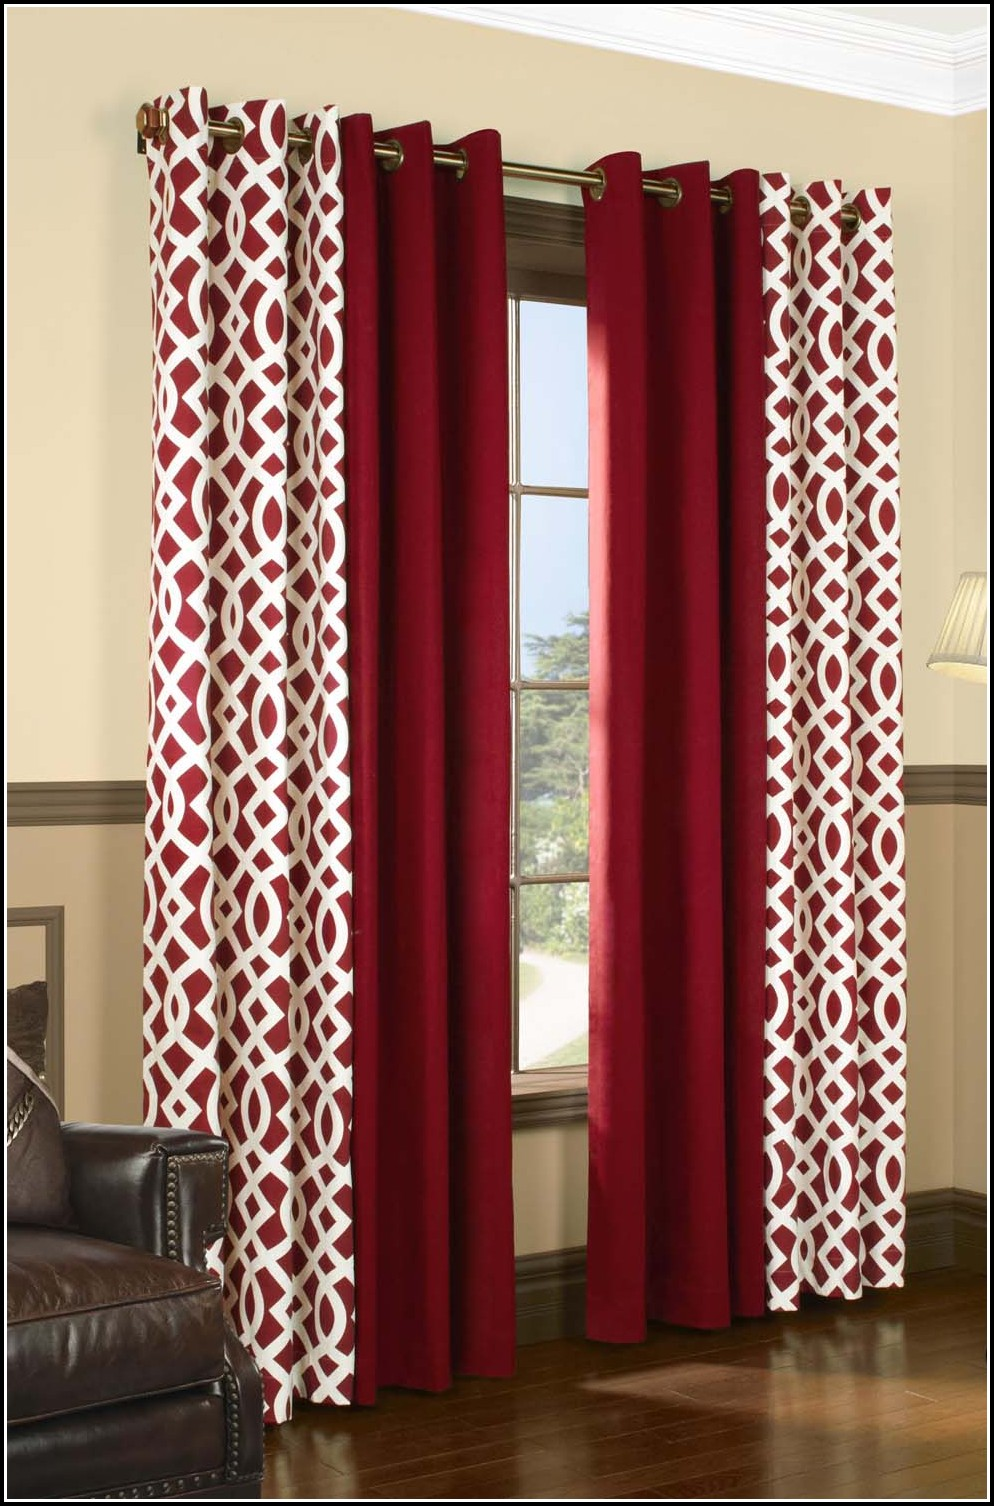 Curtain Designs creative modern red curtain ideas and designs to inspire you